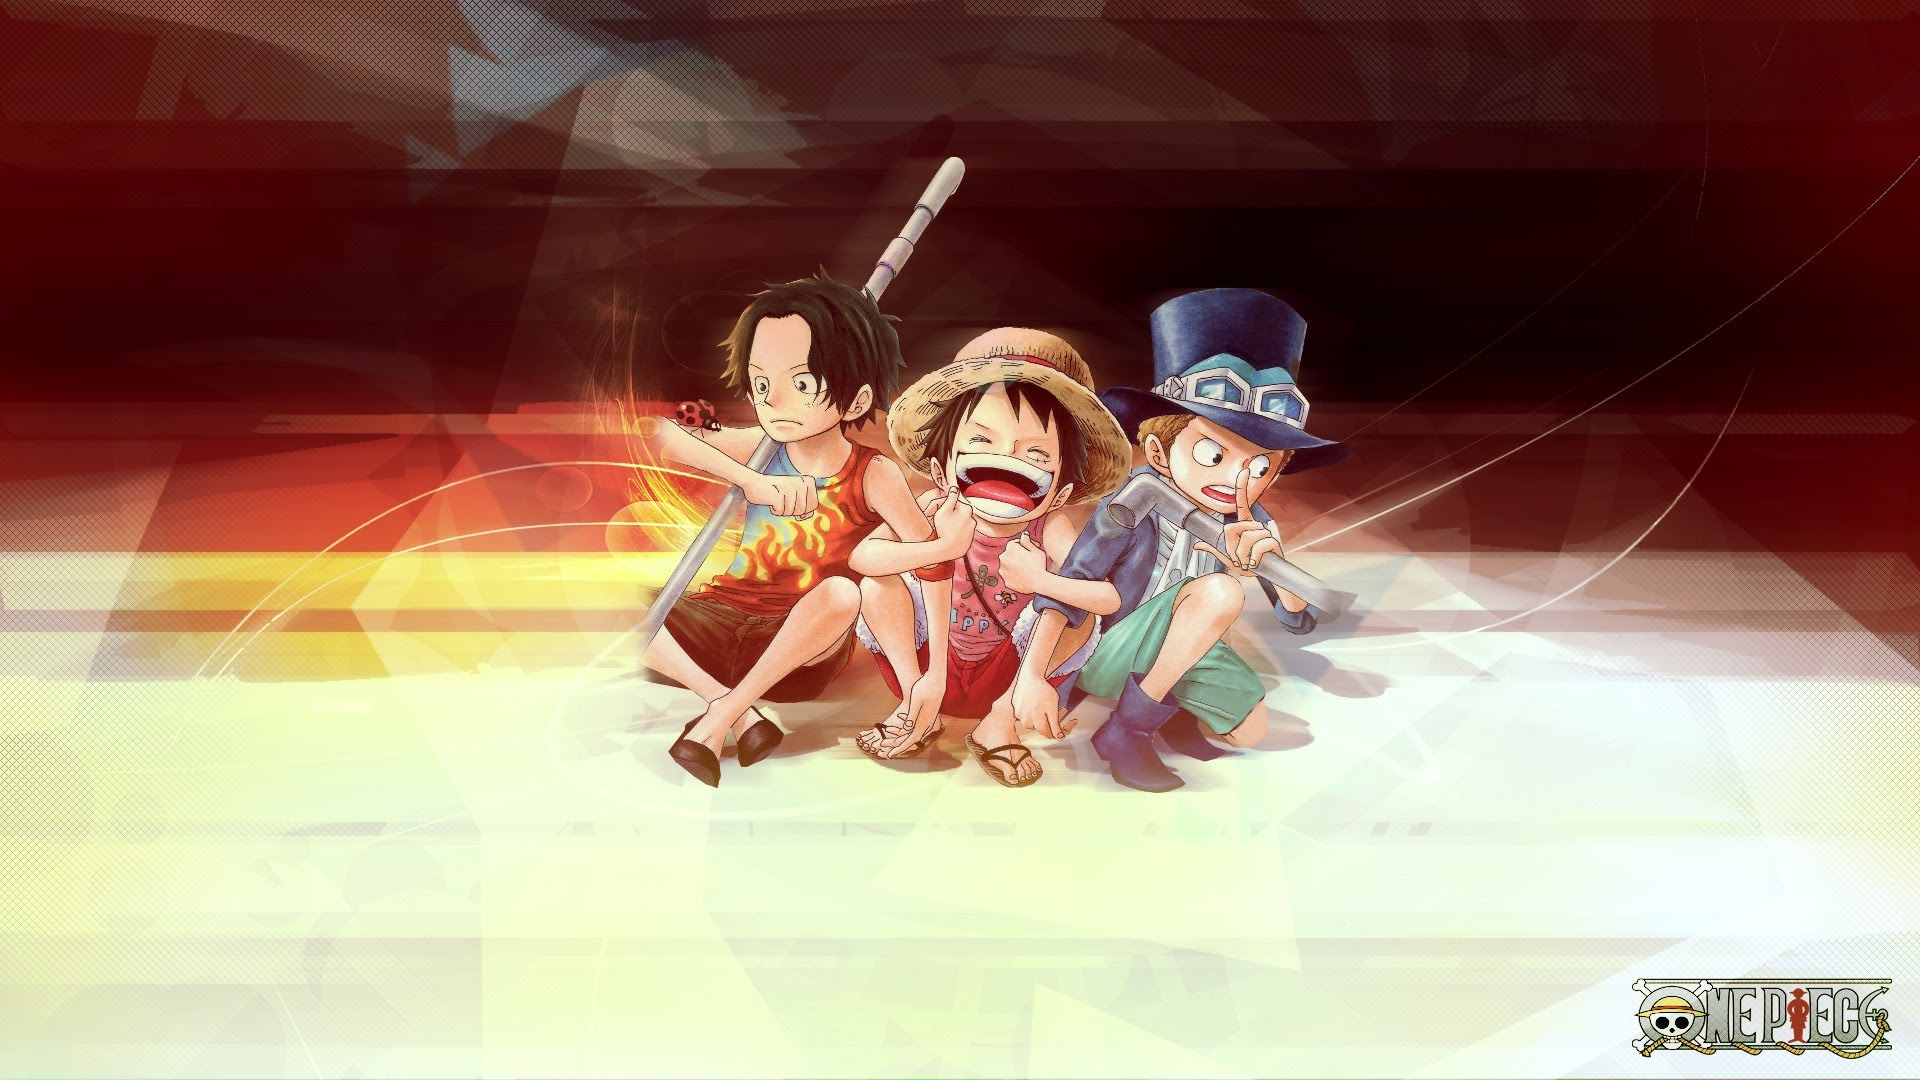 Wallpaper Ace One Piece Hd Android